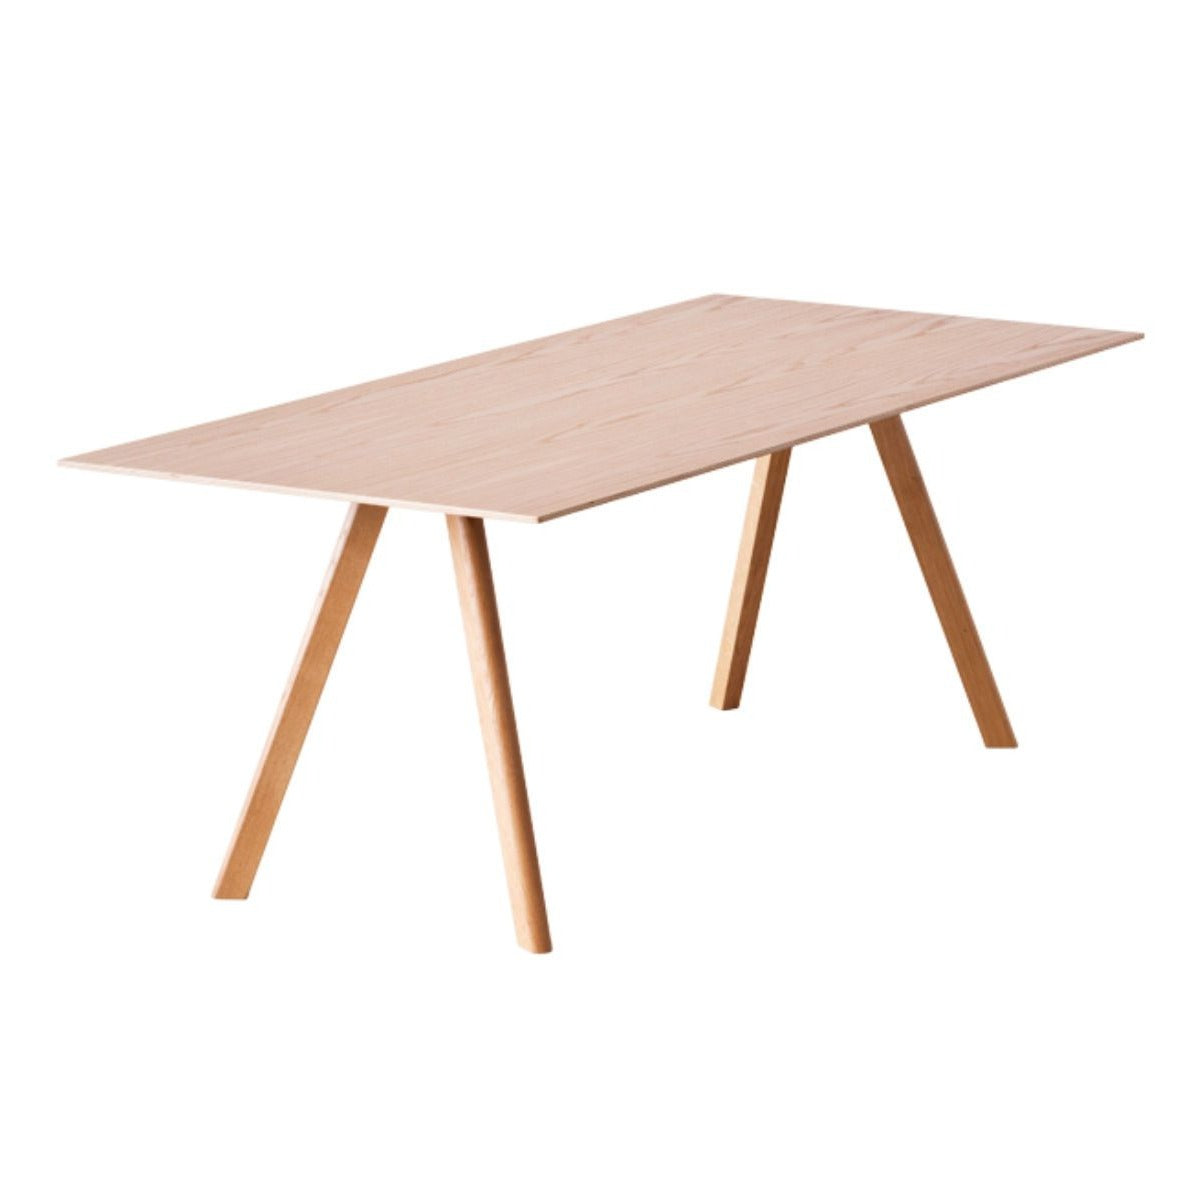 Hay CPH30 table, clear lacquered oak